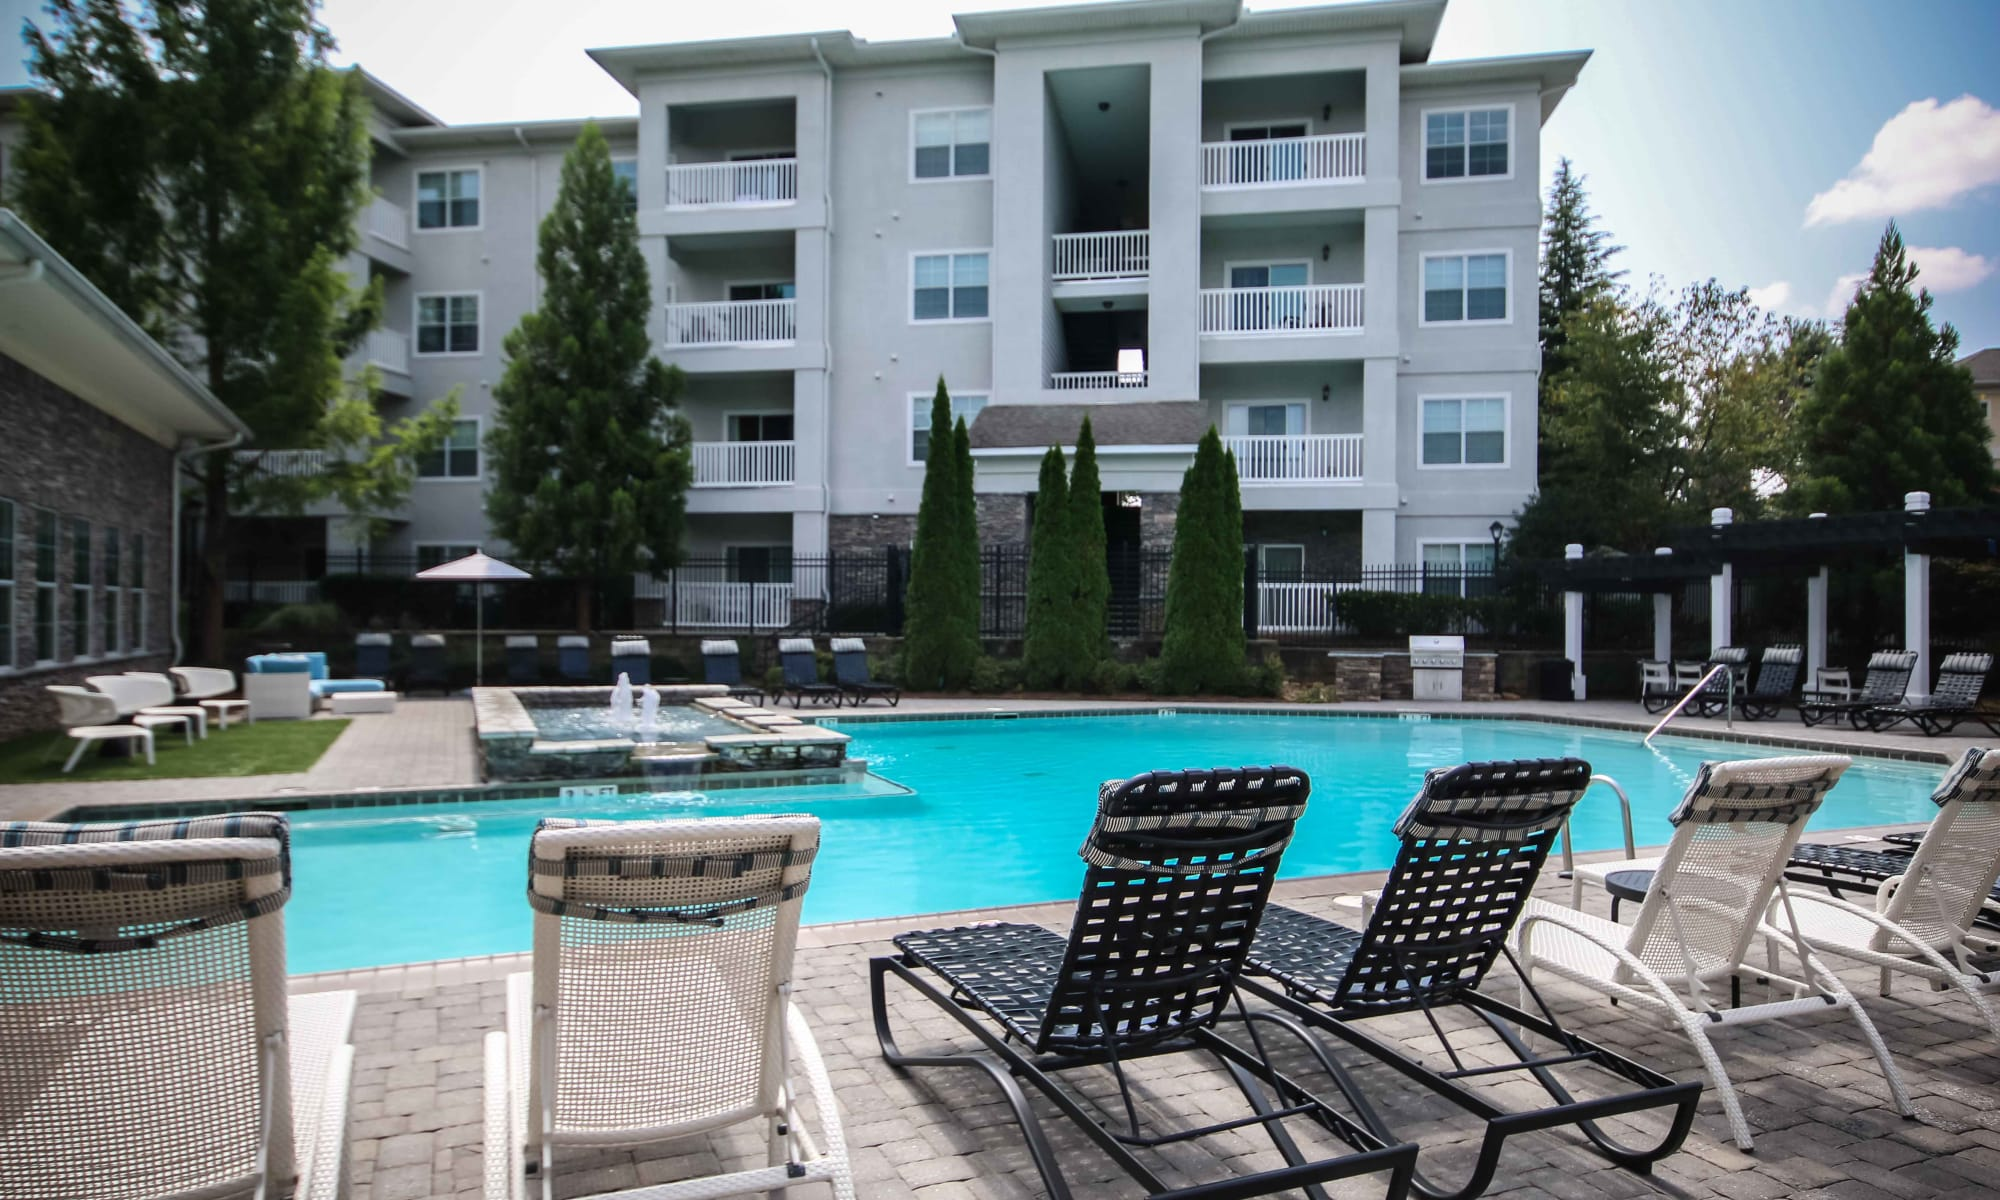 Duluth ga apartments for rent near norcross the maddox - 1 bedroom apartments in duluth ga ...